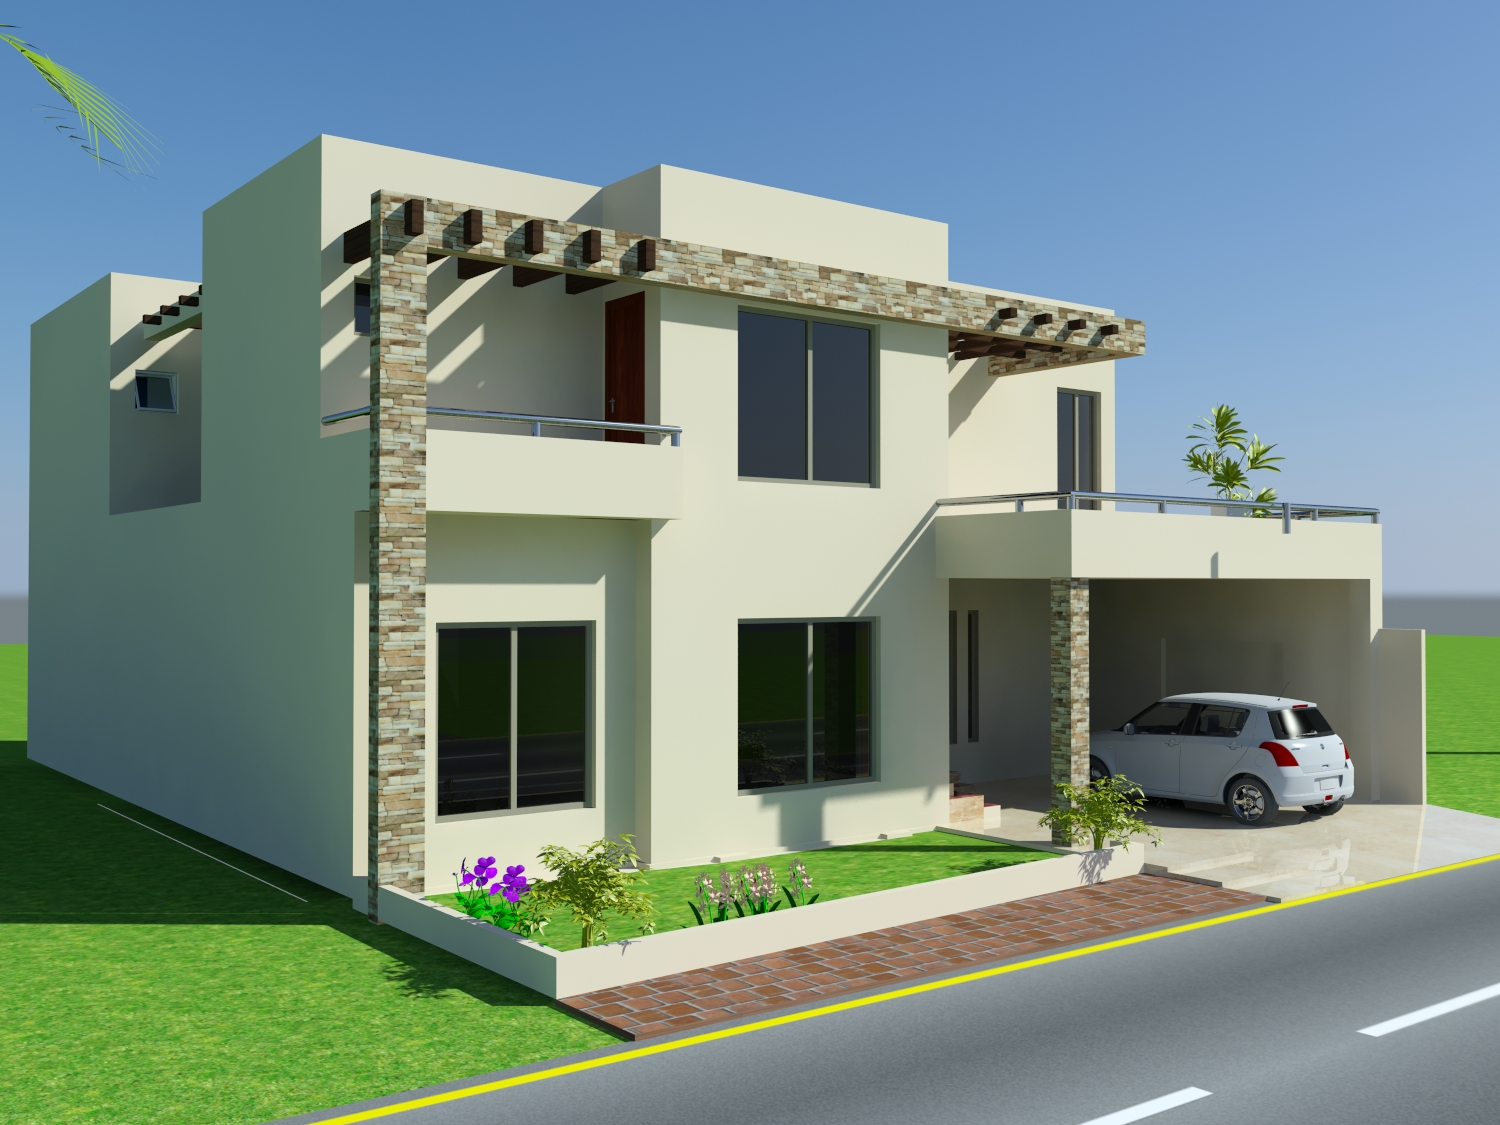 3d front 10 marla house design mian wali 3d house building